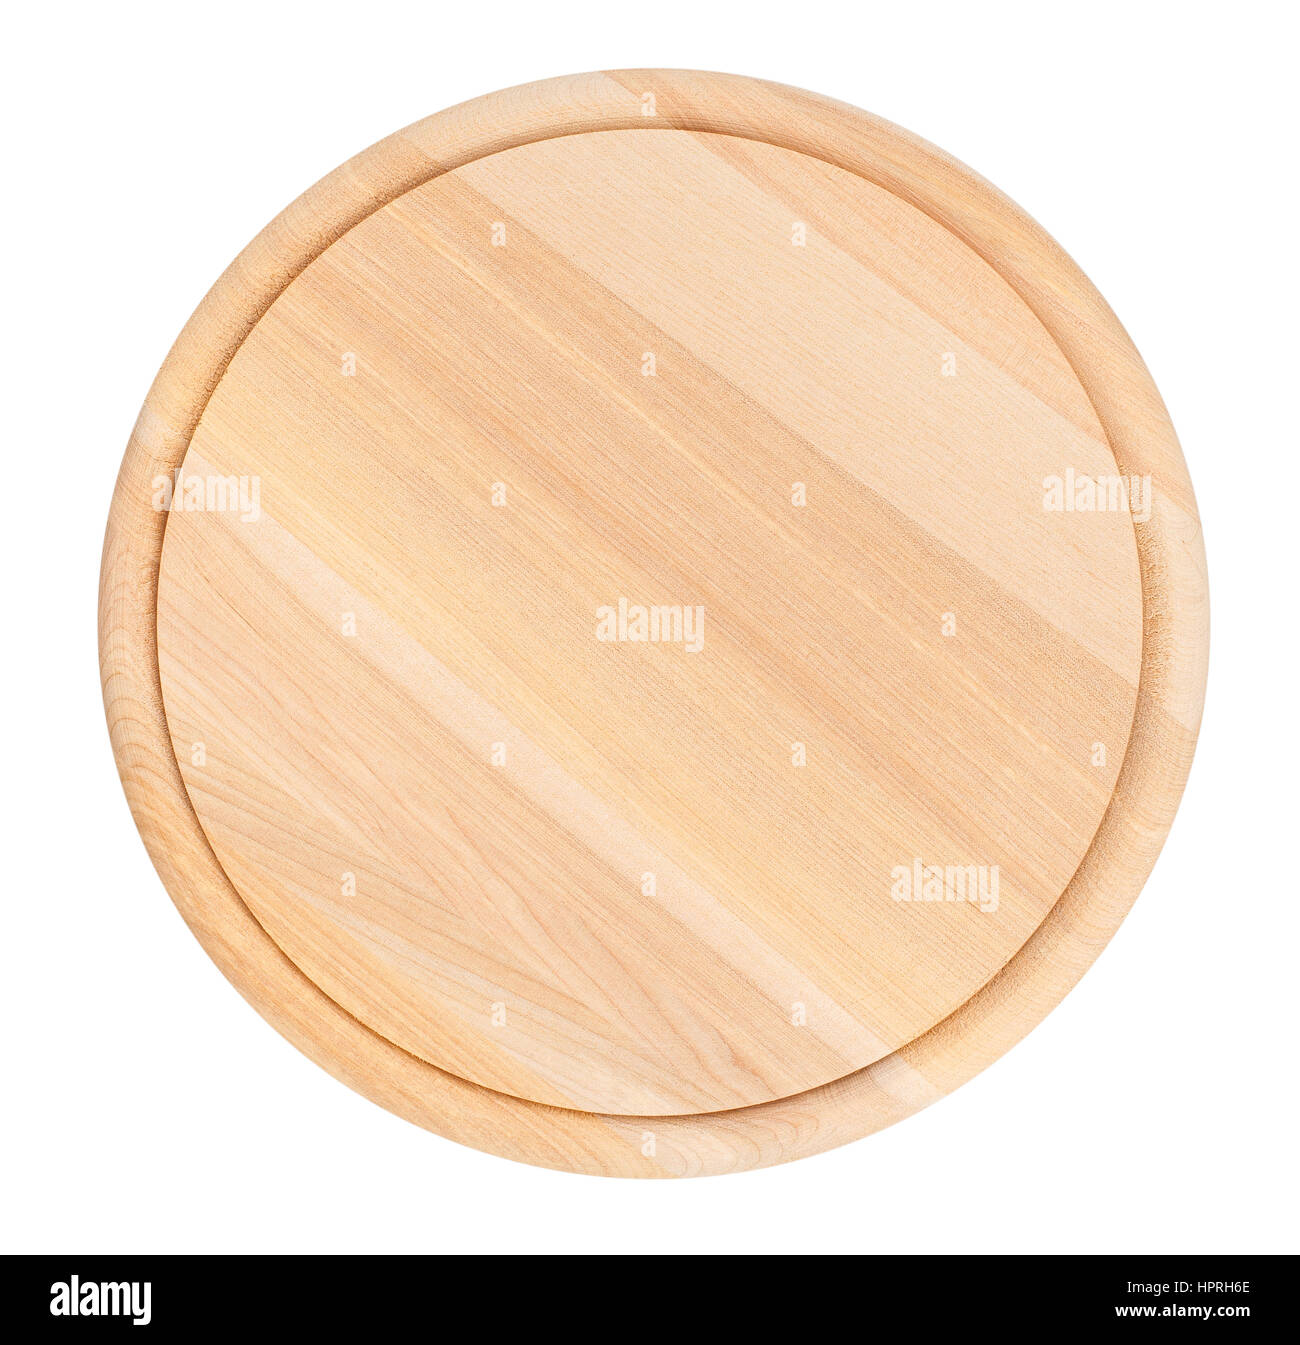 round cutting board isolated - Stock Image